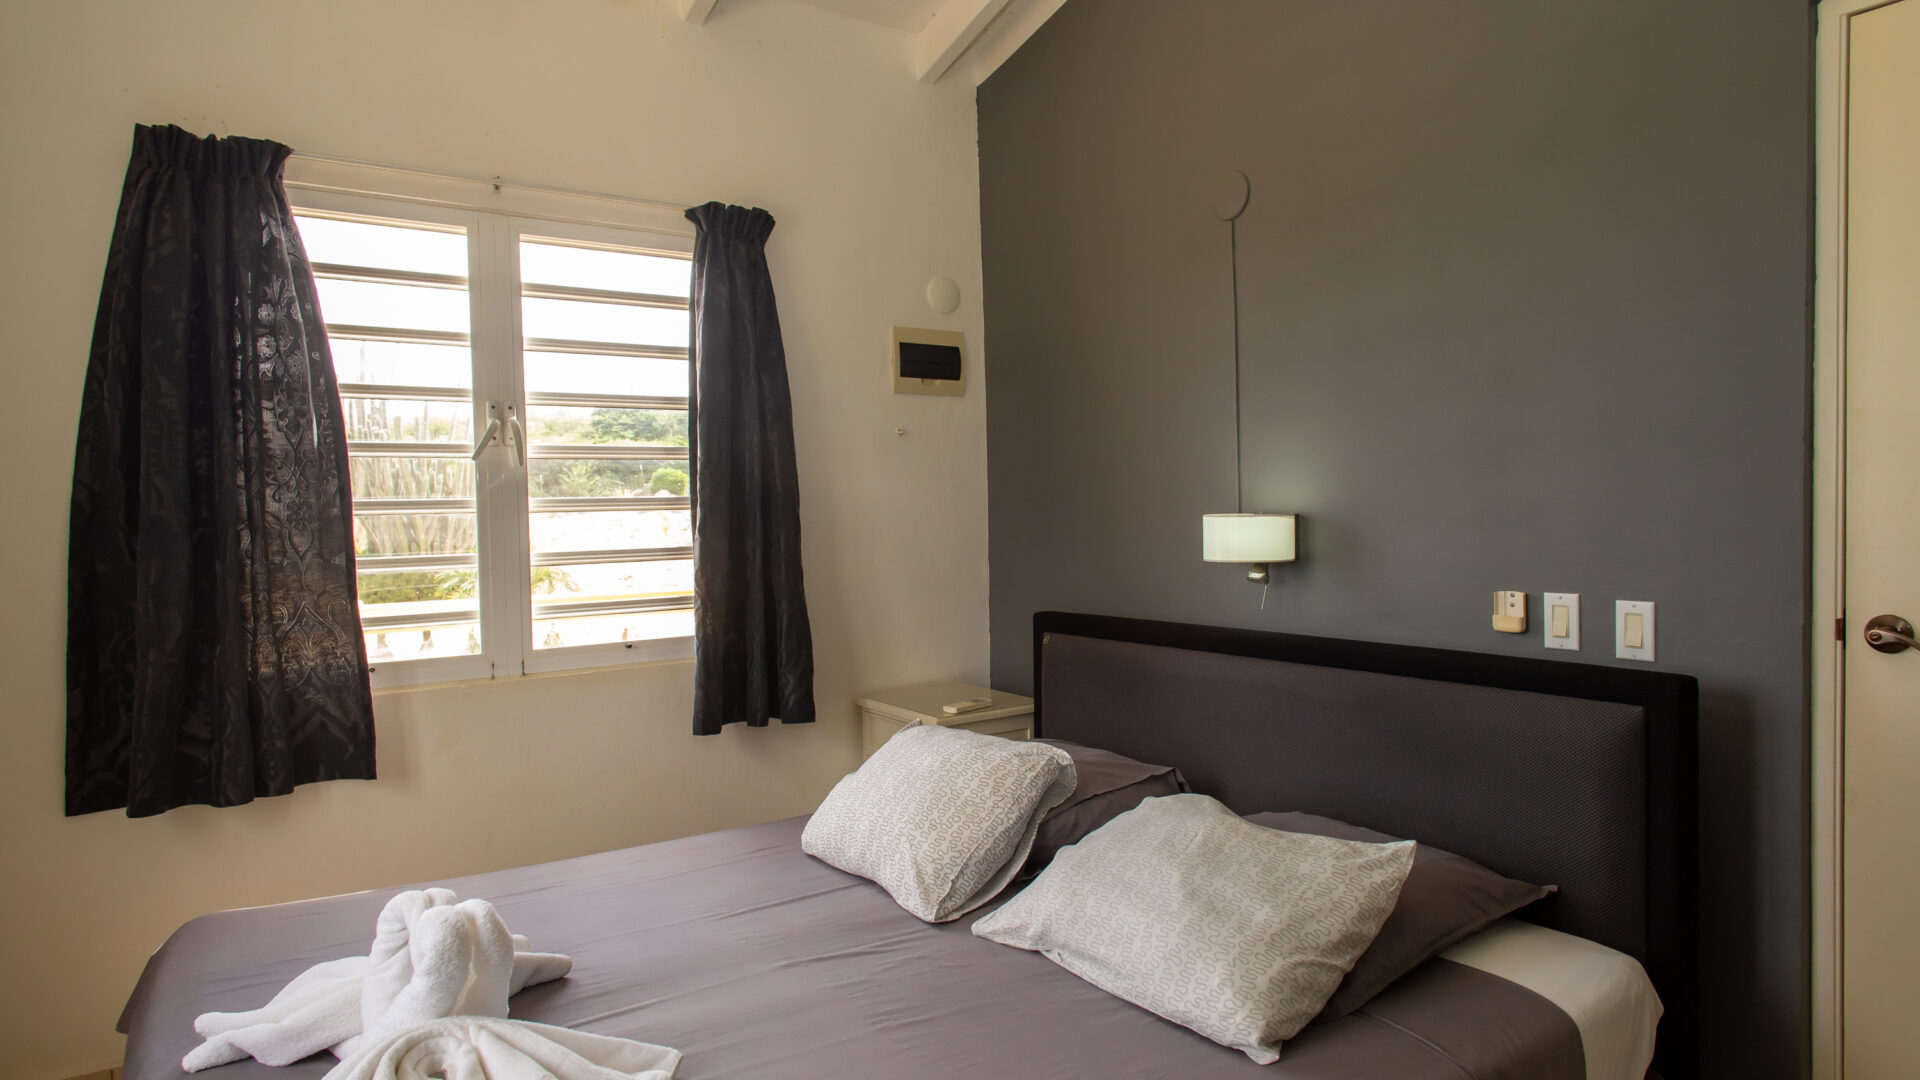 Hillside apartments Bonaire - -4318